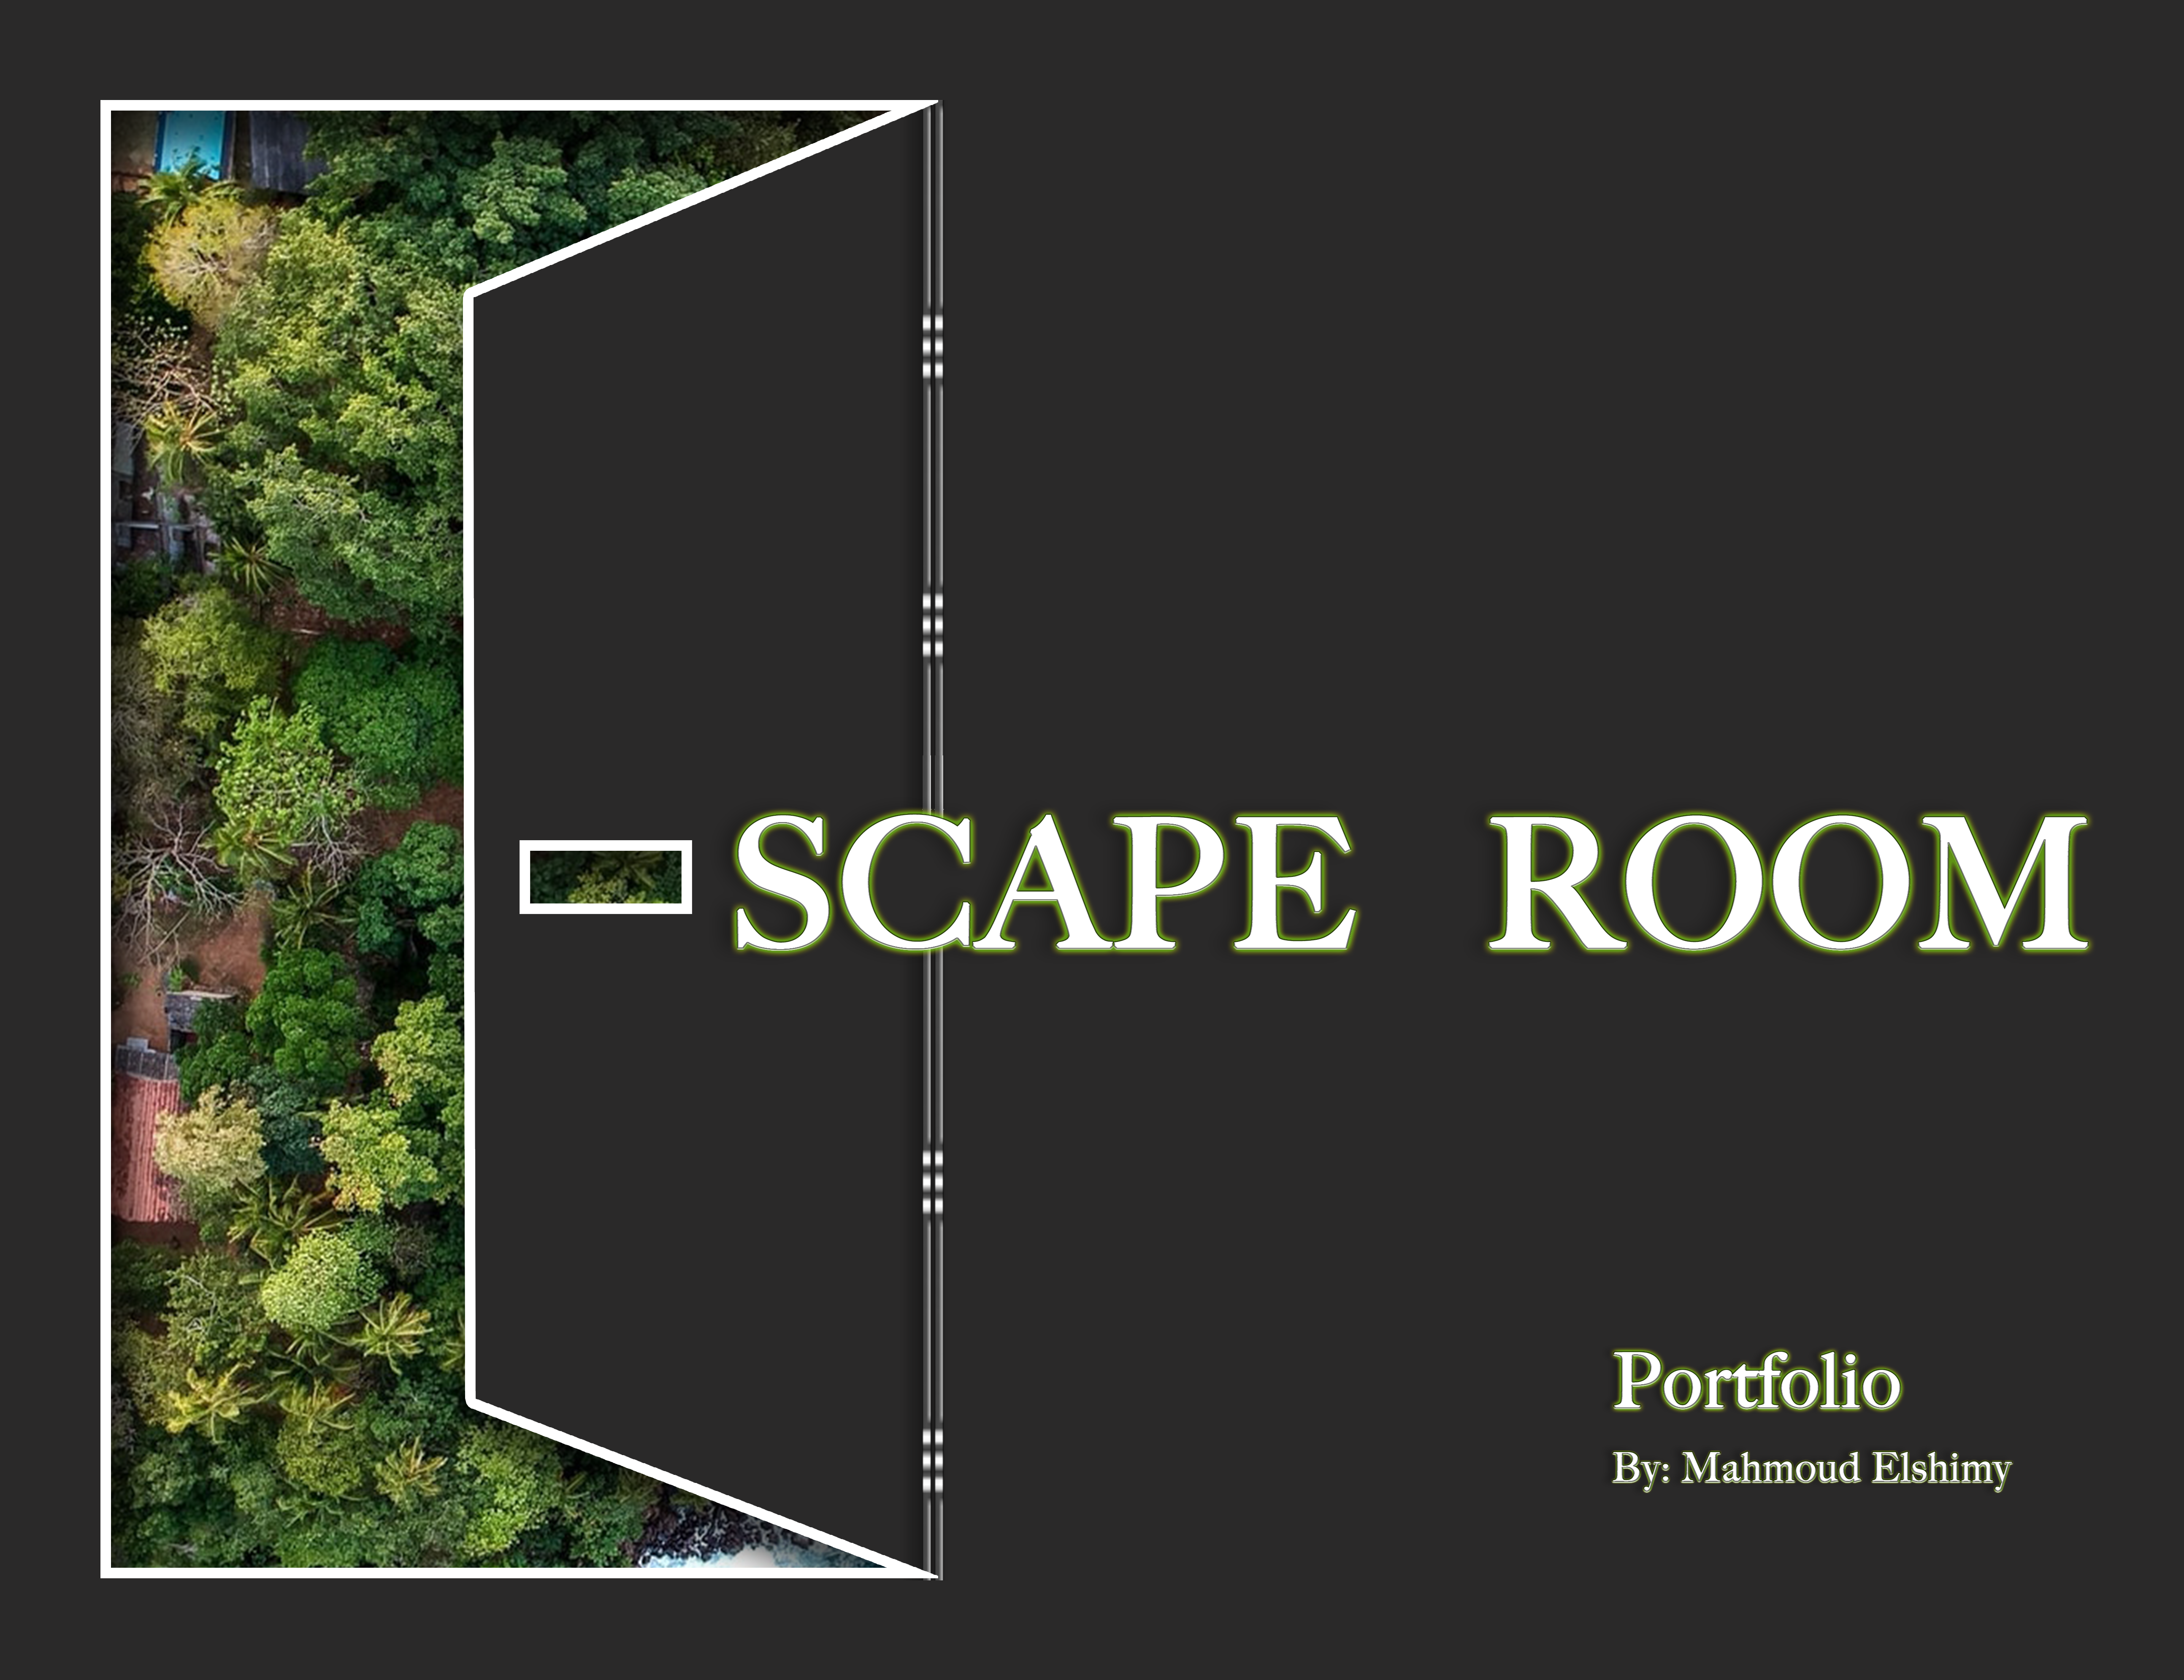 Portfolio Cover showing how escaping to nature would change your life especially if suffering from stress and anxiety